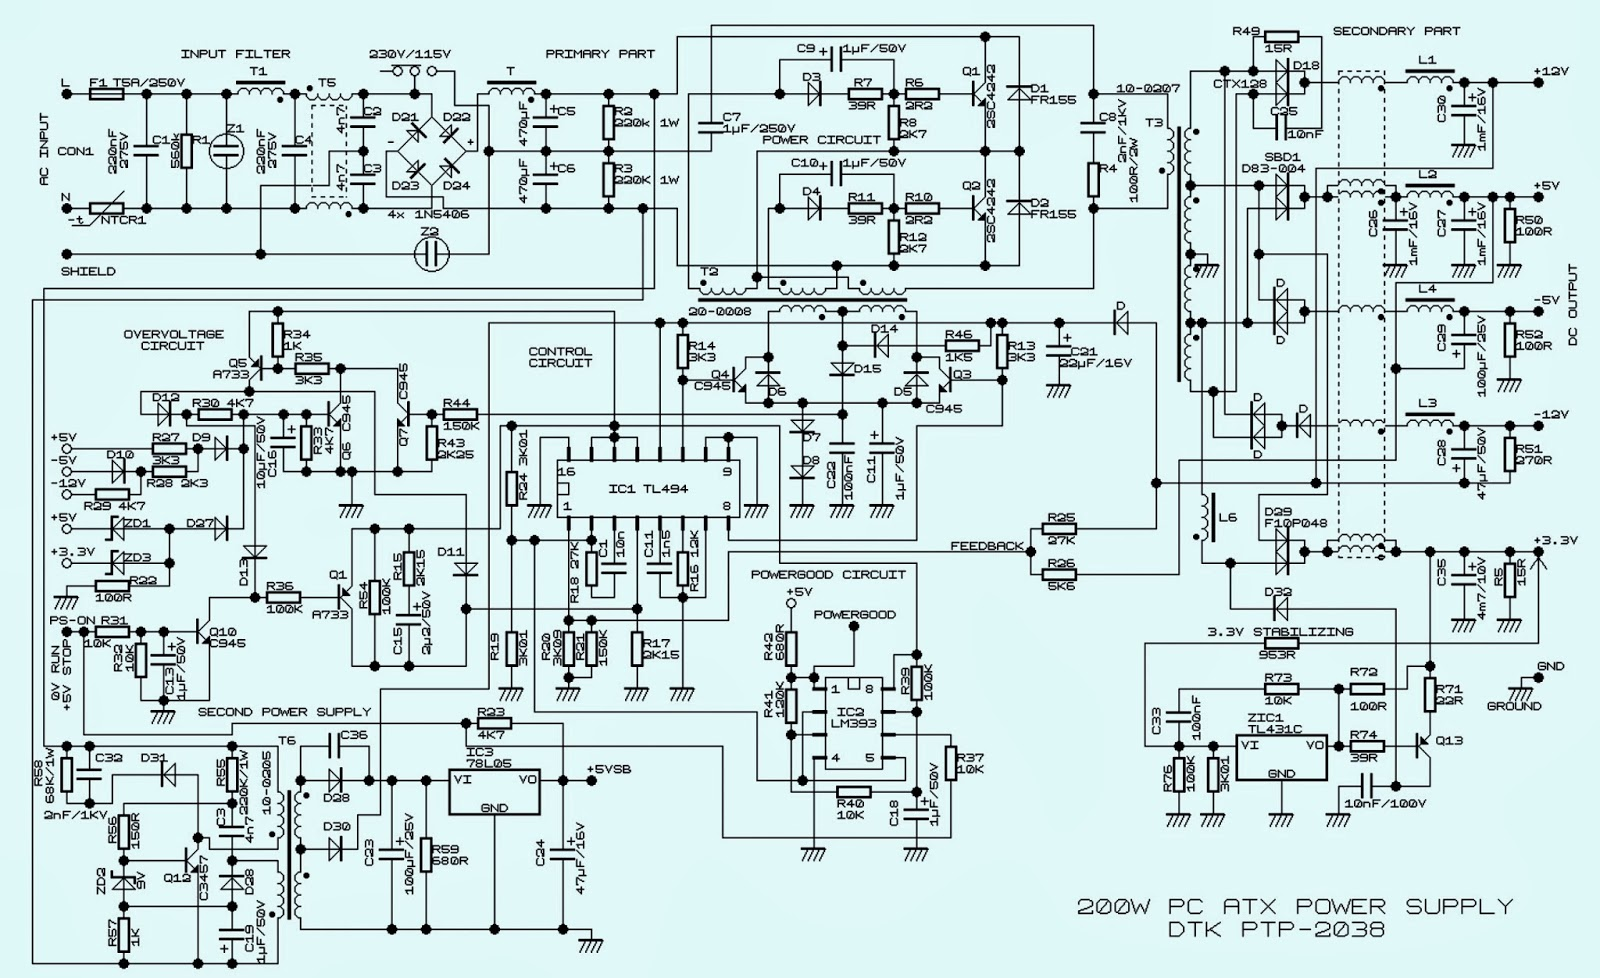 medium resolution of computer logic diagram wiring diagrams wnicomputer logic diagram wiring diagram computer logic diagram